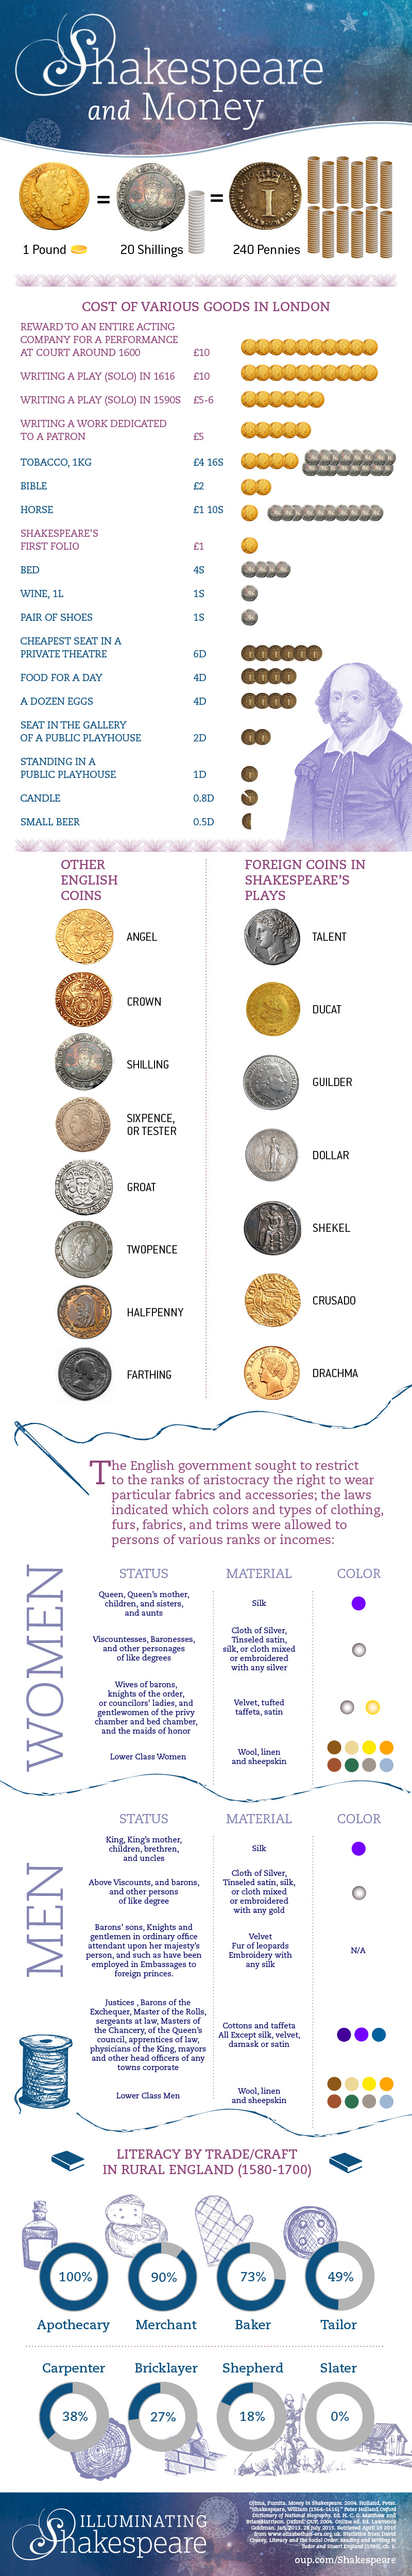 Shakespeare and Money infographic jpg